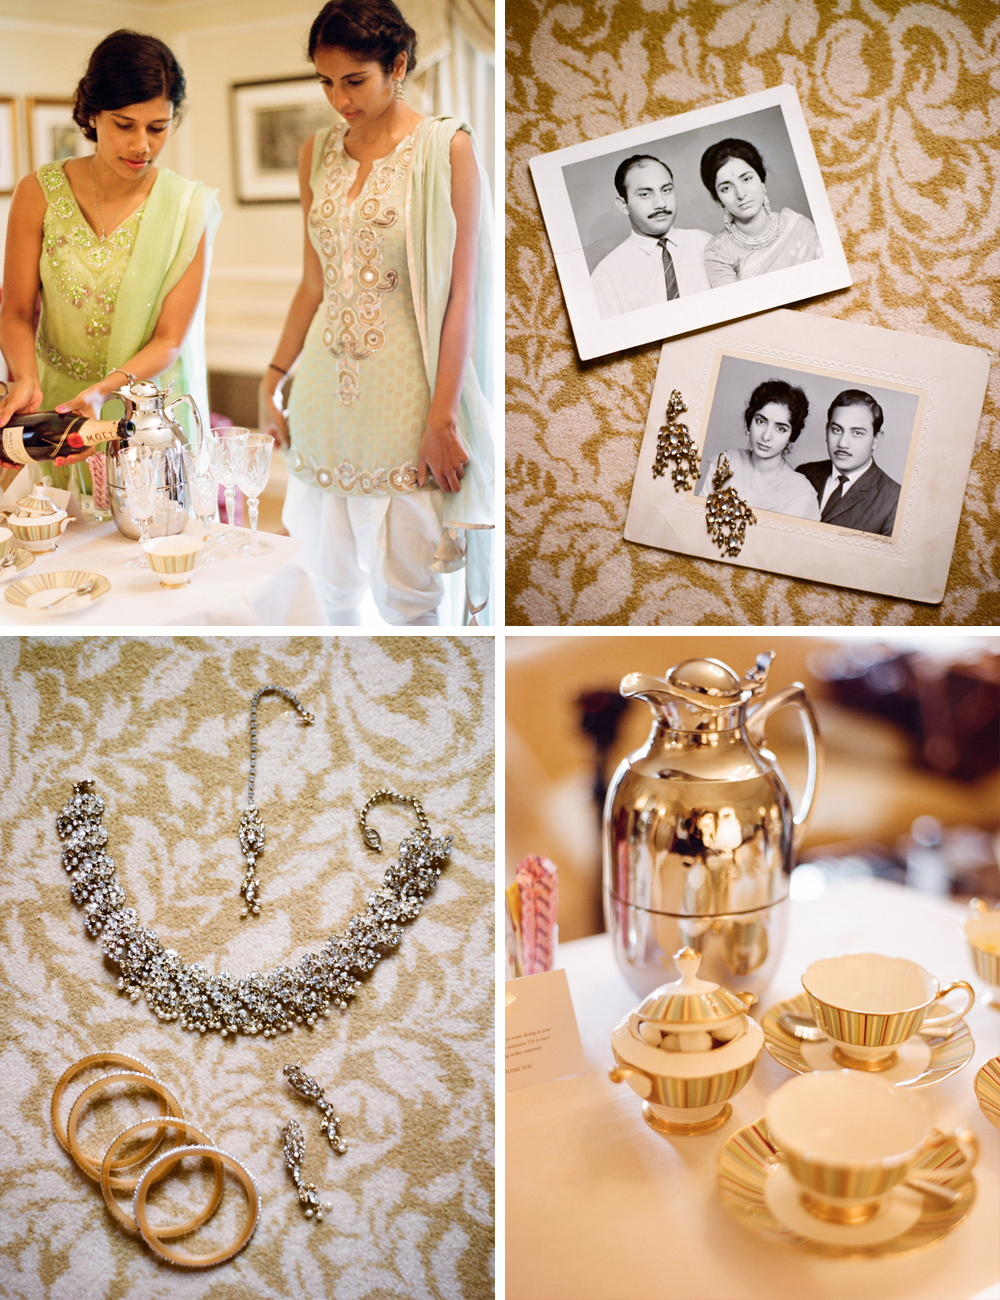 Jewish Hindu multi cultural wedding at the Mandarin Oriental London 6